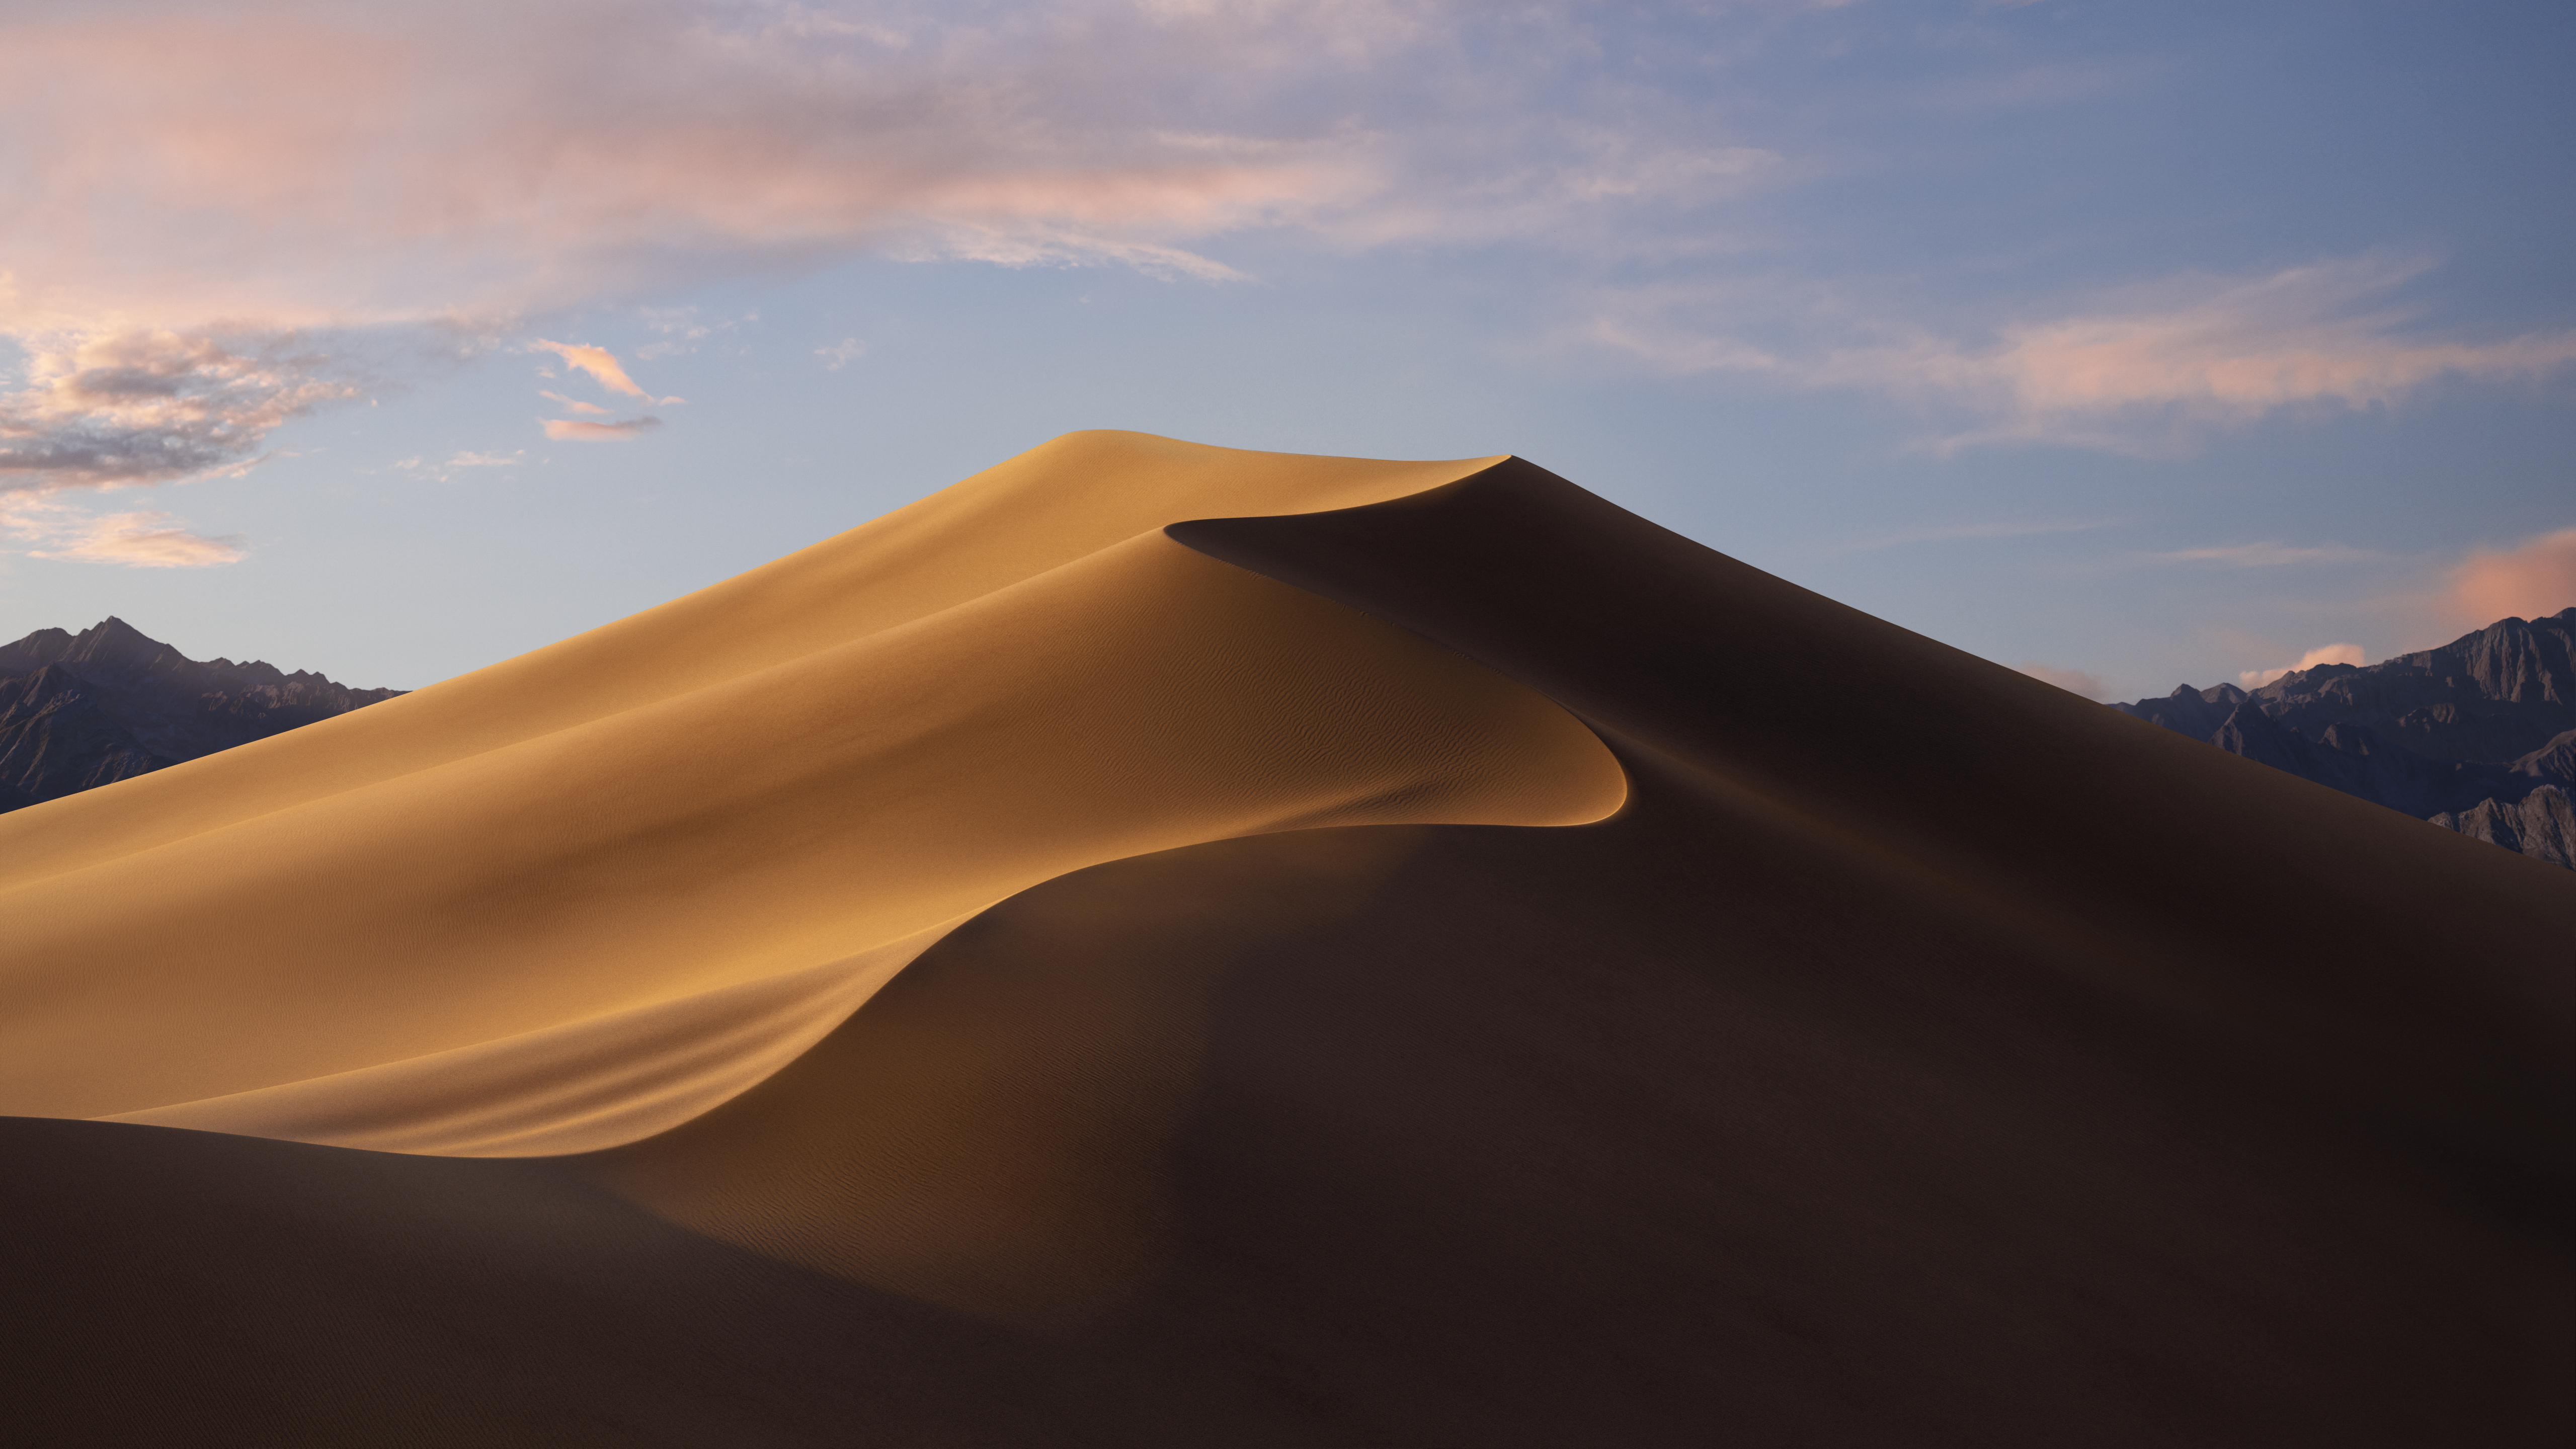 Download macOS Mojave wallpapers for desktop and iPhone